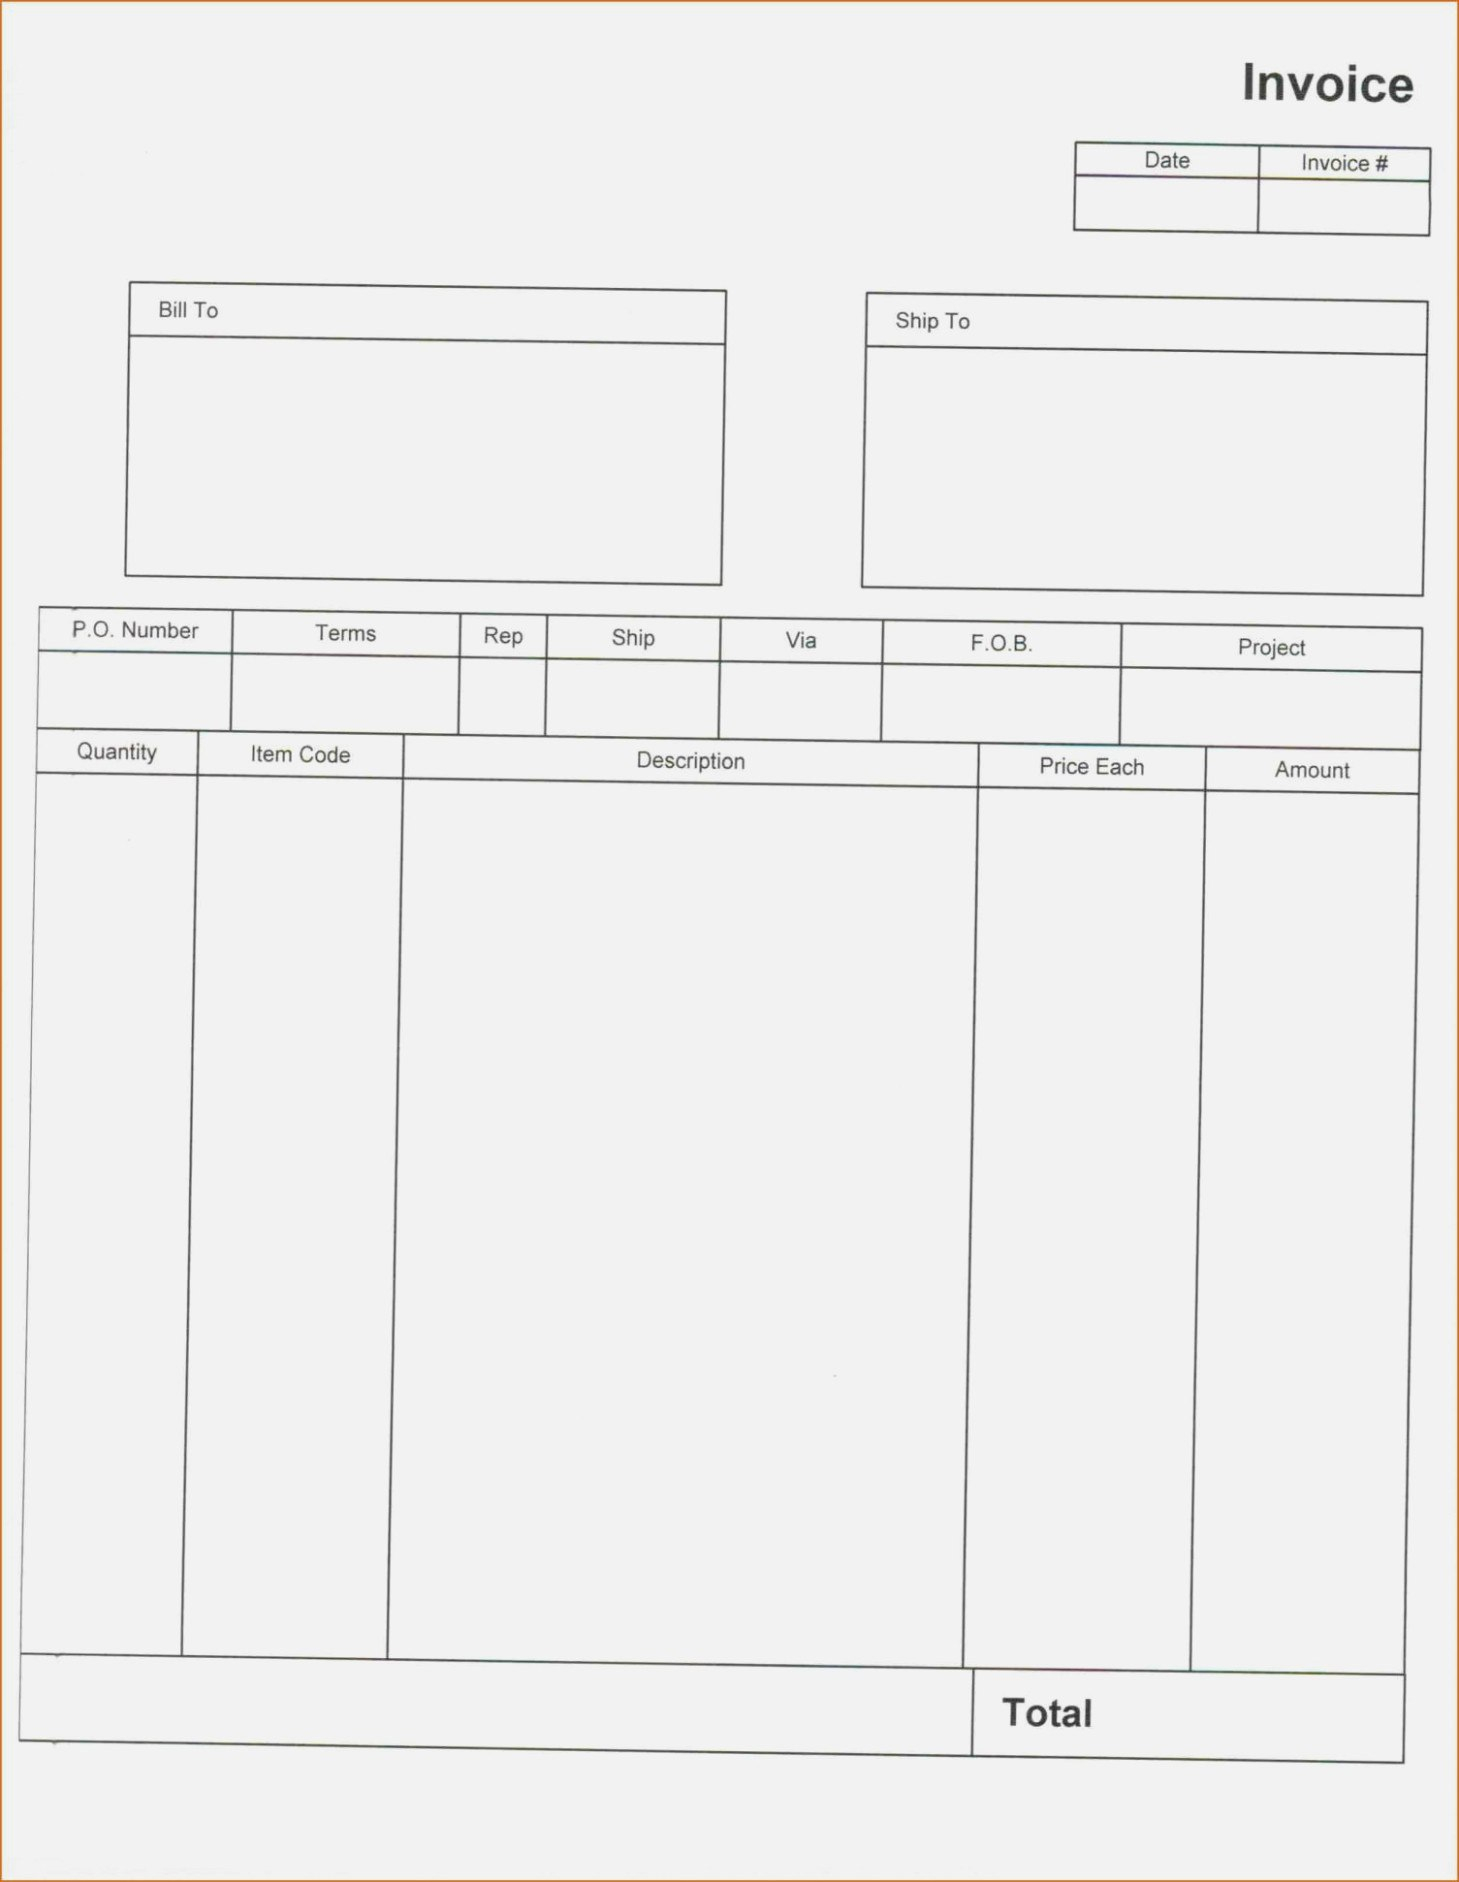 Quickbooks Invoice Templates Download Desktop Template Excel Pertaining To Quickbooks Invoice Template Excel